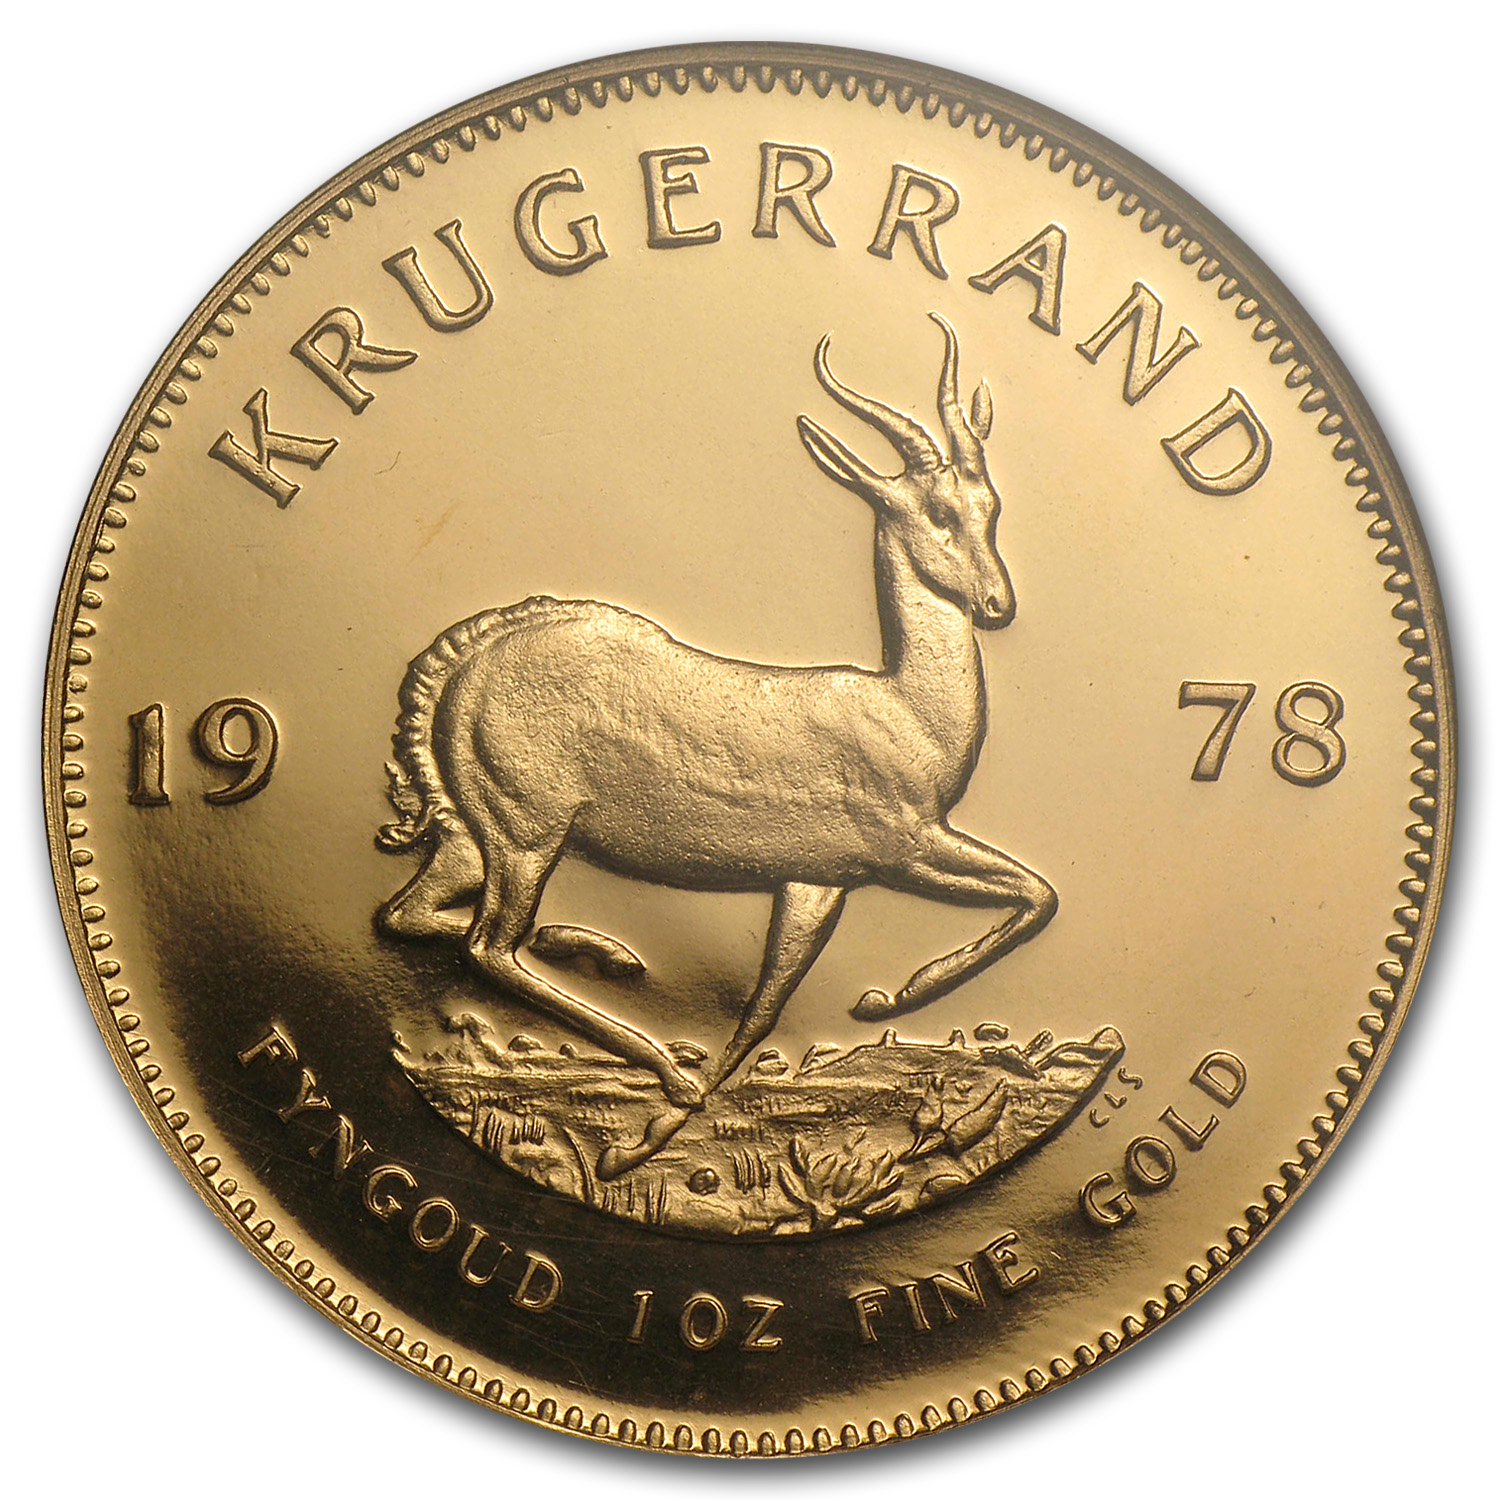 1978 1 oz Gold South African Krugerrand PF-68 NGC